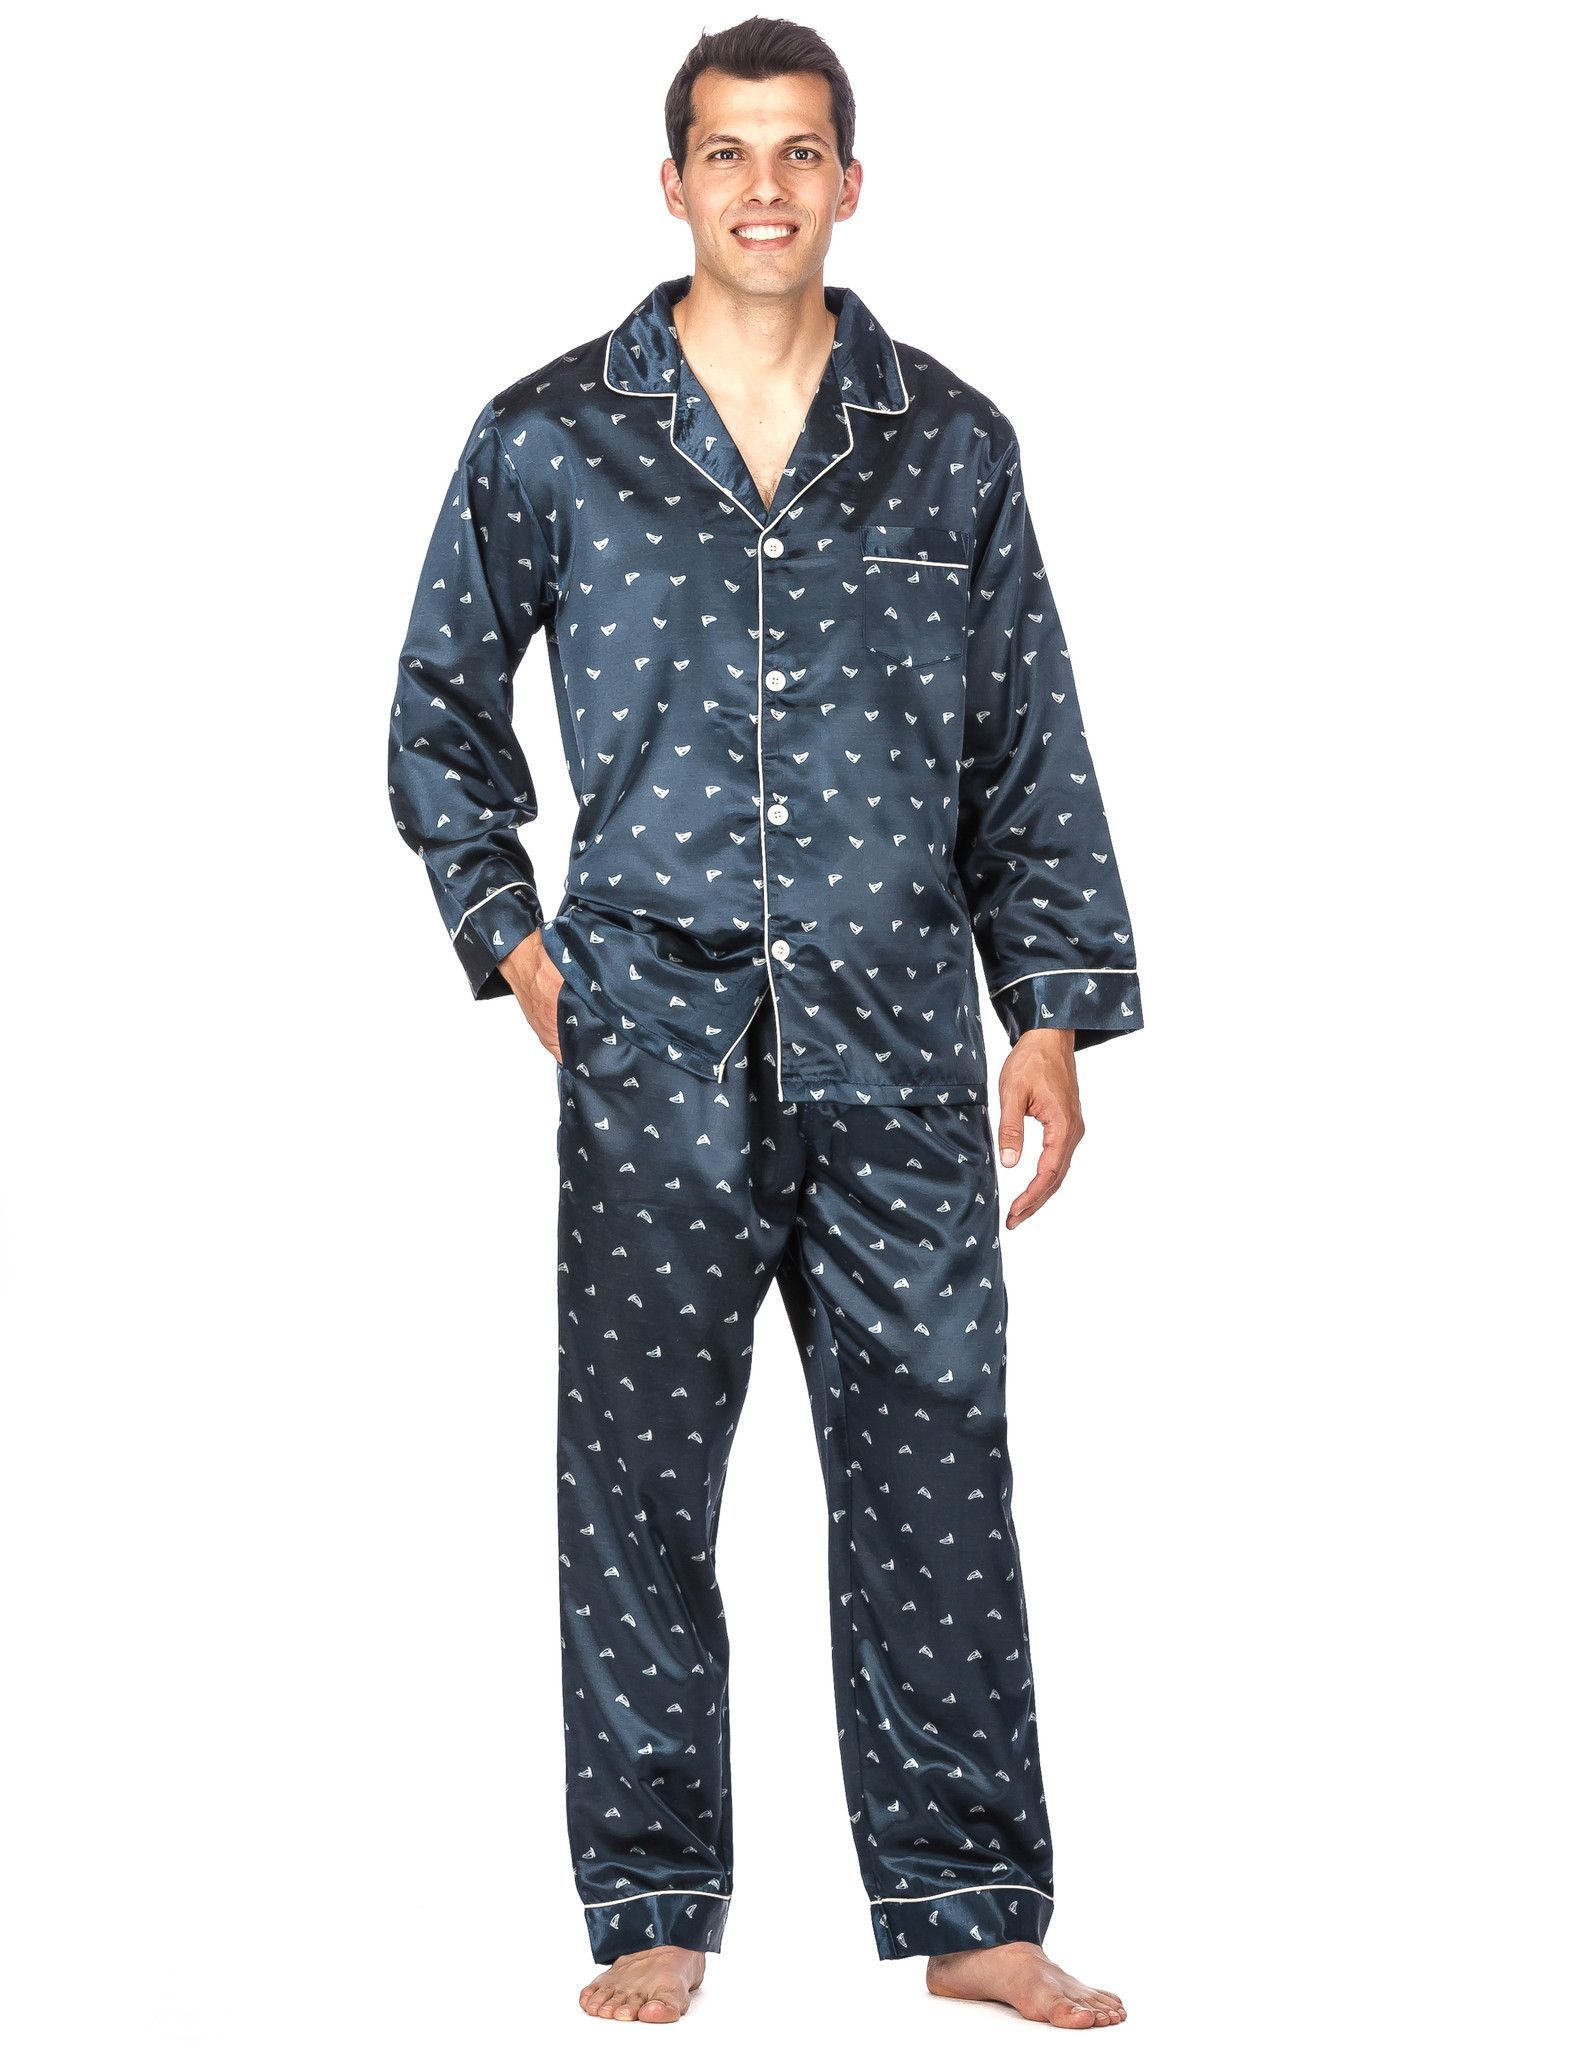 Men s Premium Satin Pajama Sleepwear Set in 2019  c8c2c8361